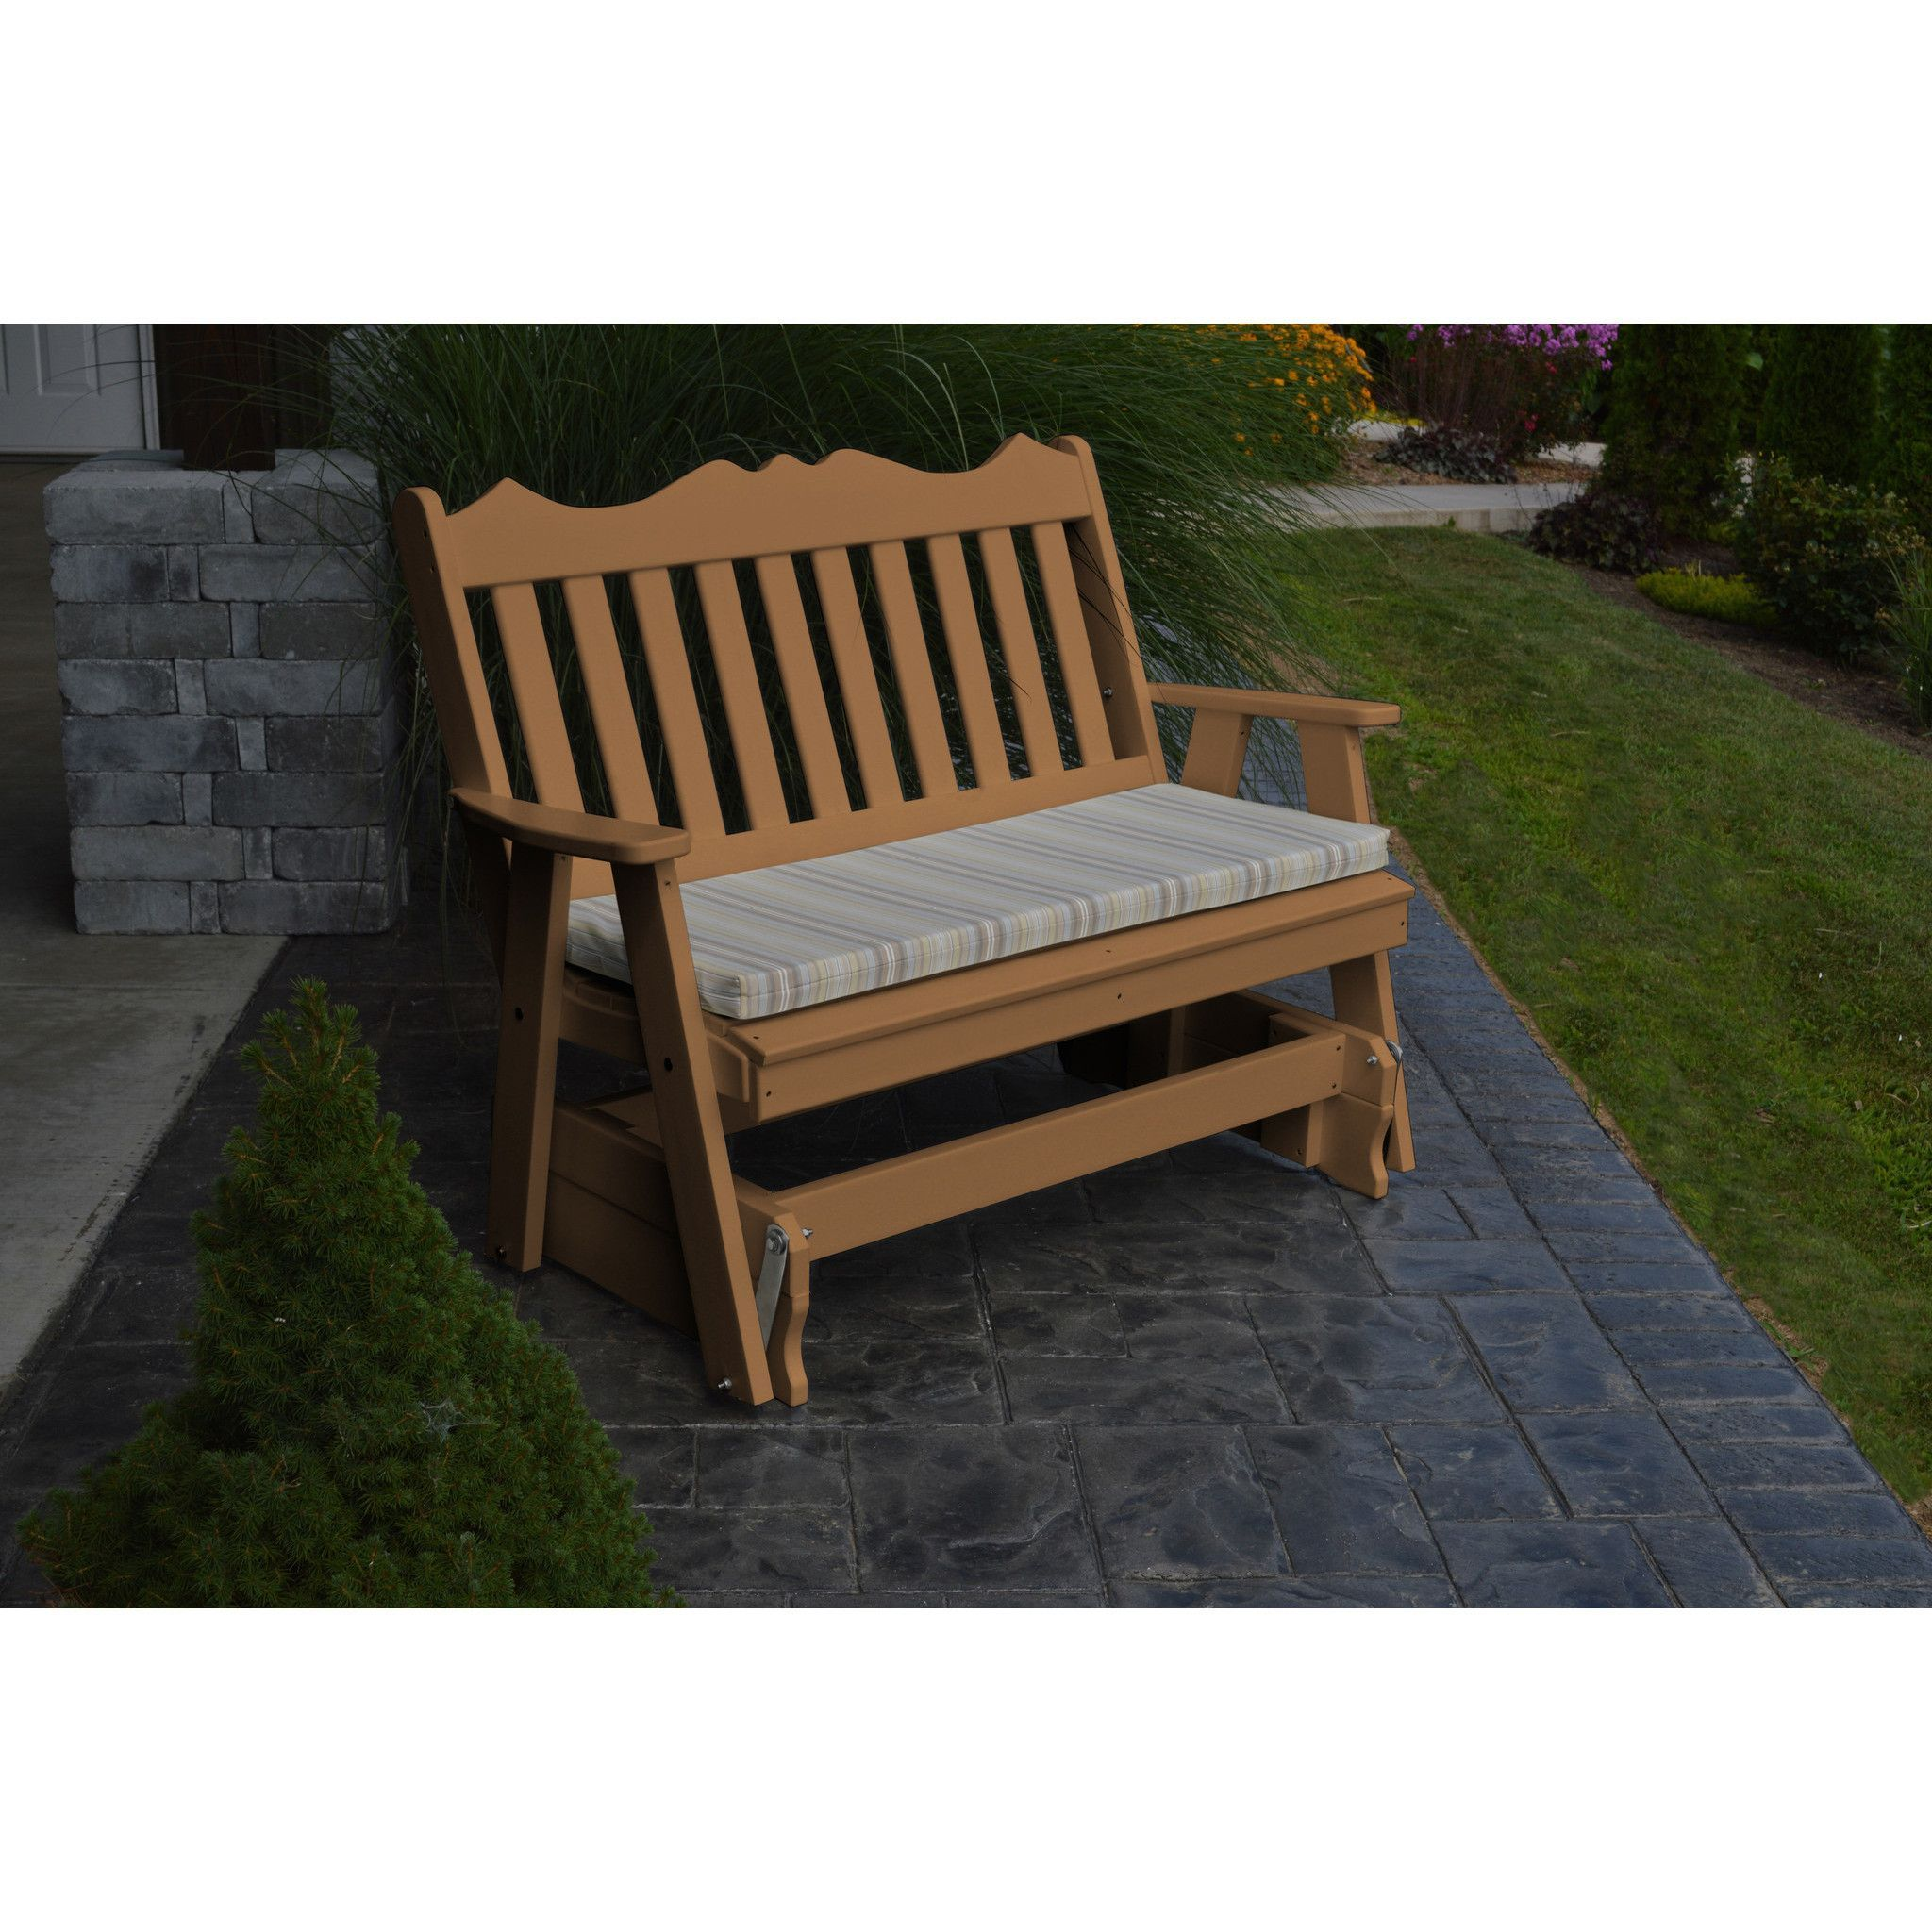 Aul furniture company royal english recycled plastic ft glider